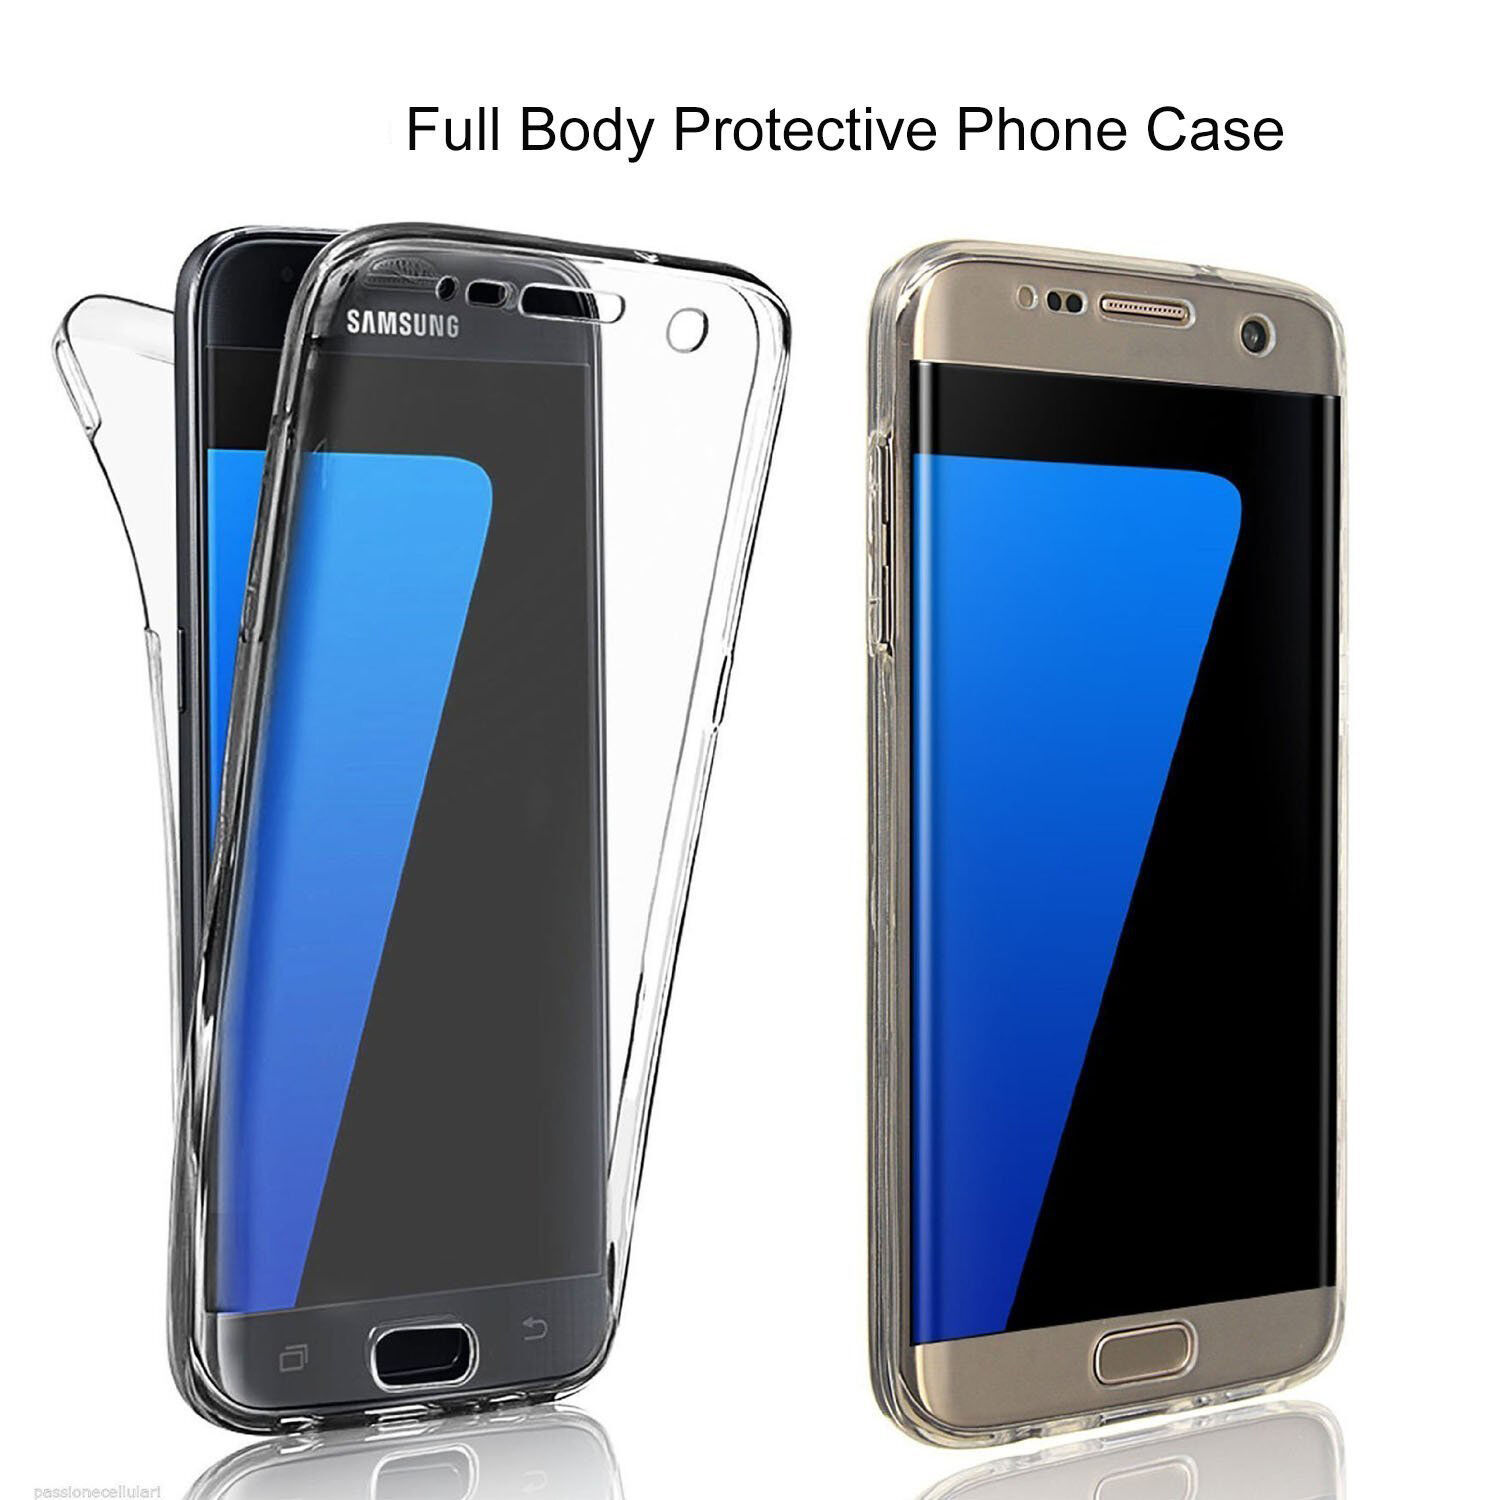 newest 86fd3 18a22 Details about Shockproof TPU 360° Protective Clear Case Cover For Samsung  Galaxy S7 / S7 Edge